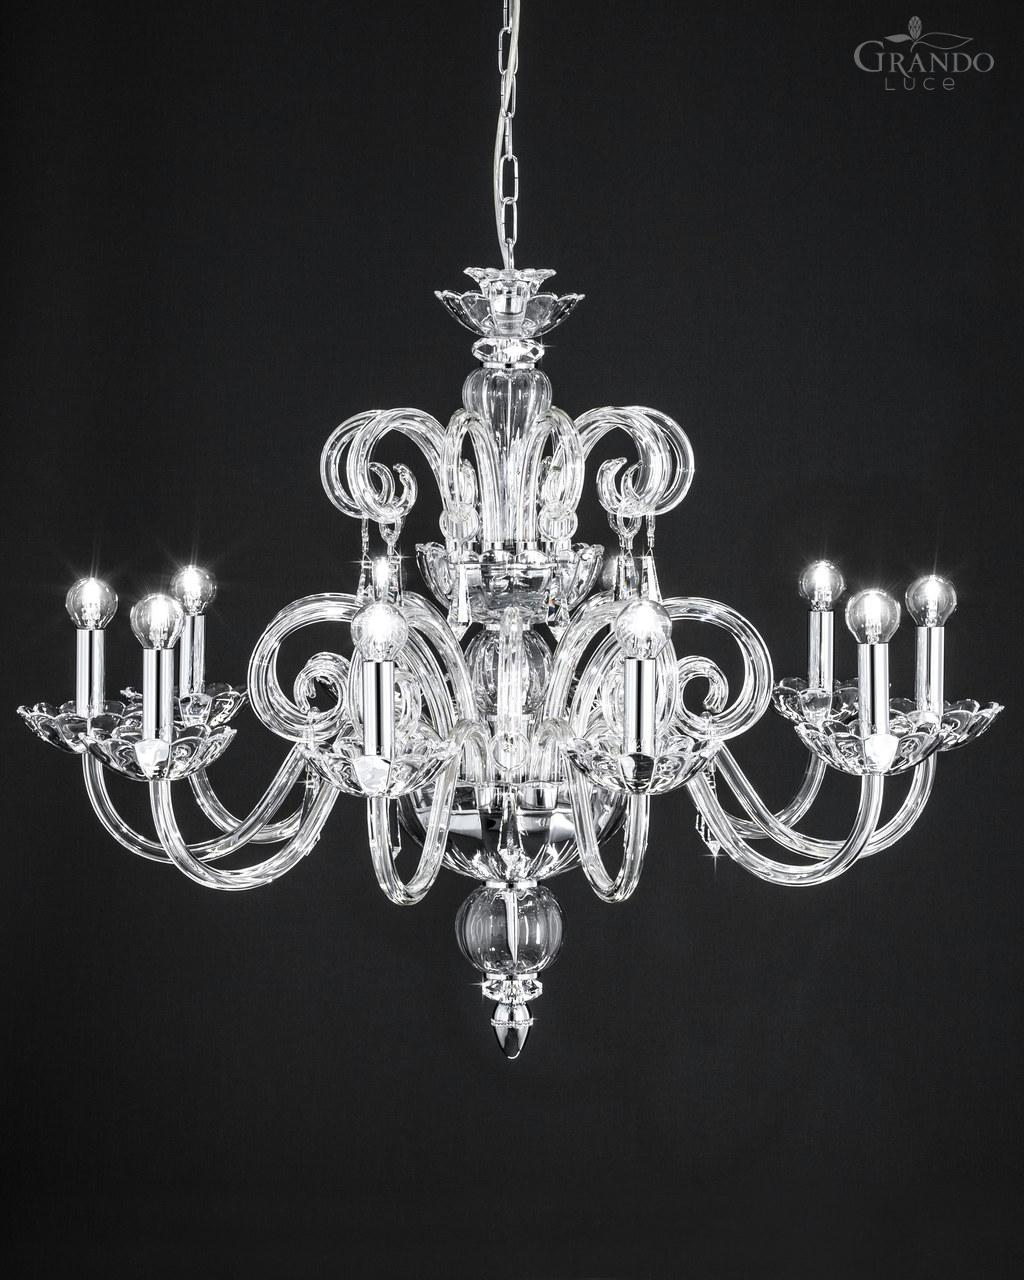 Crystal Chandelier Ceiling Fan Combo | Wrought Iron and Crystal Chandelier | Chandelier Crystals